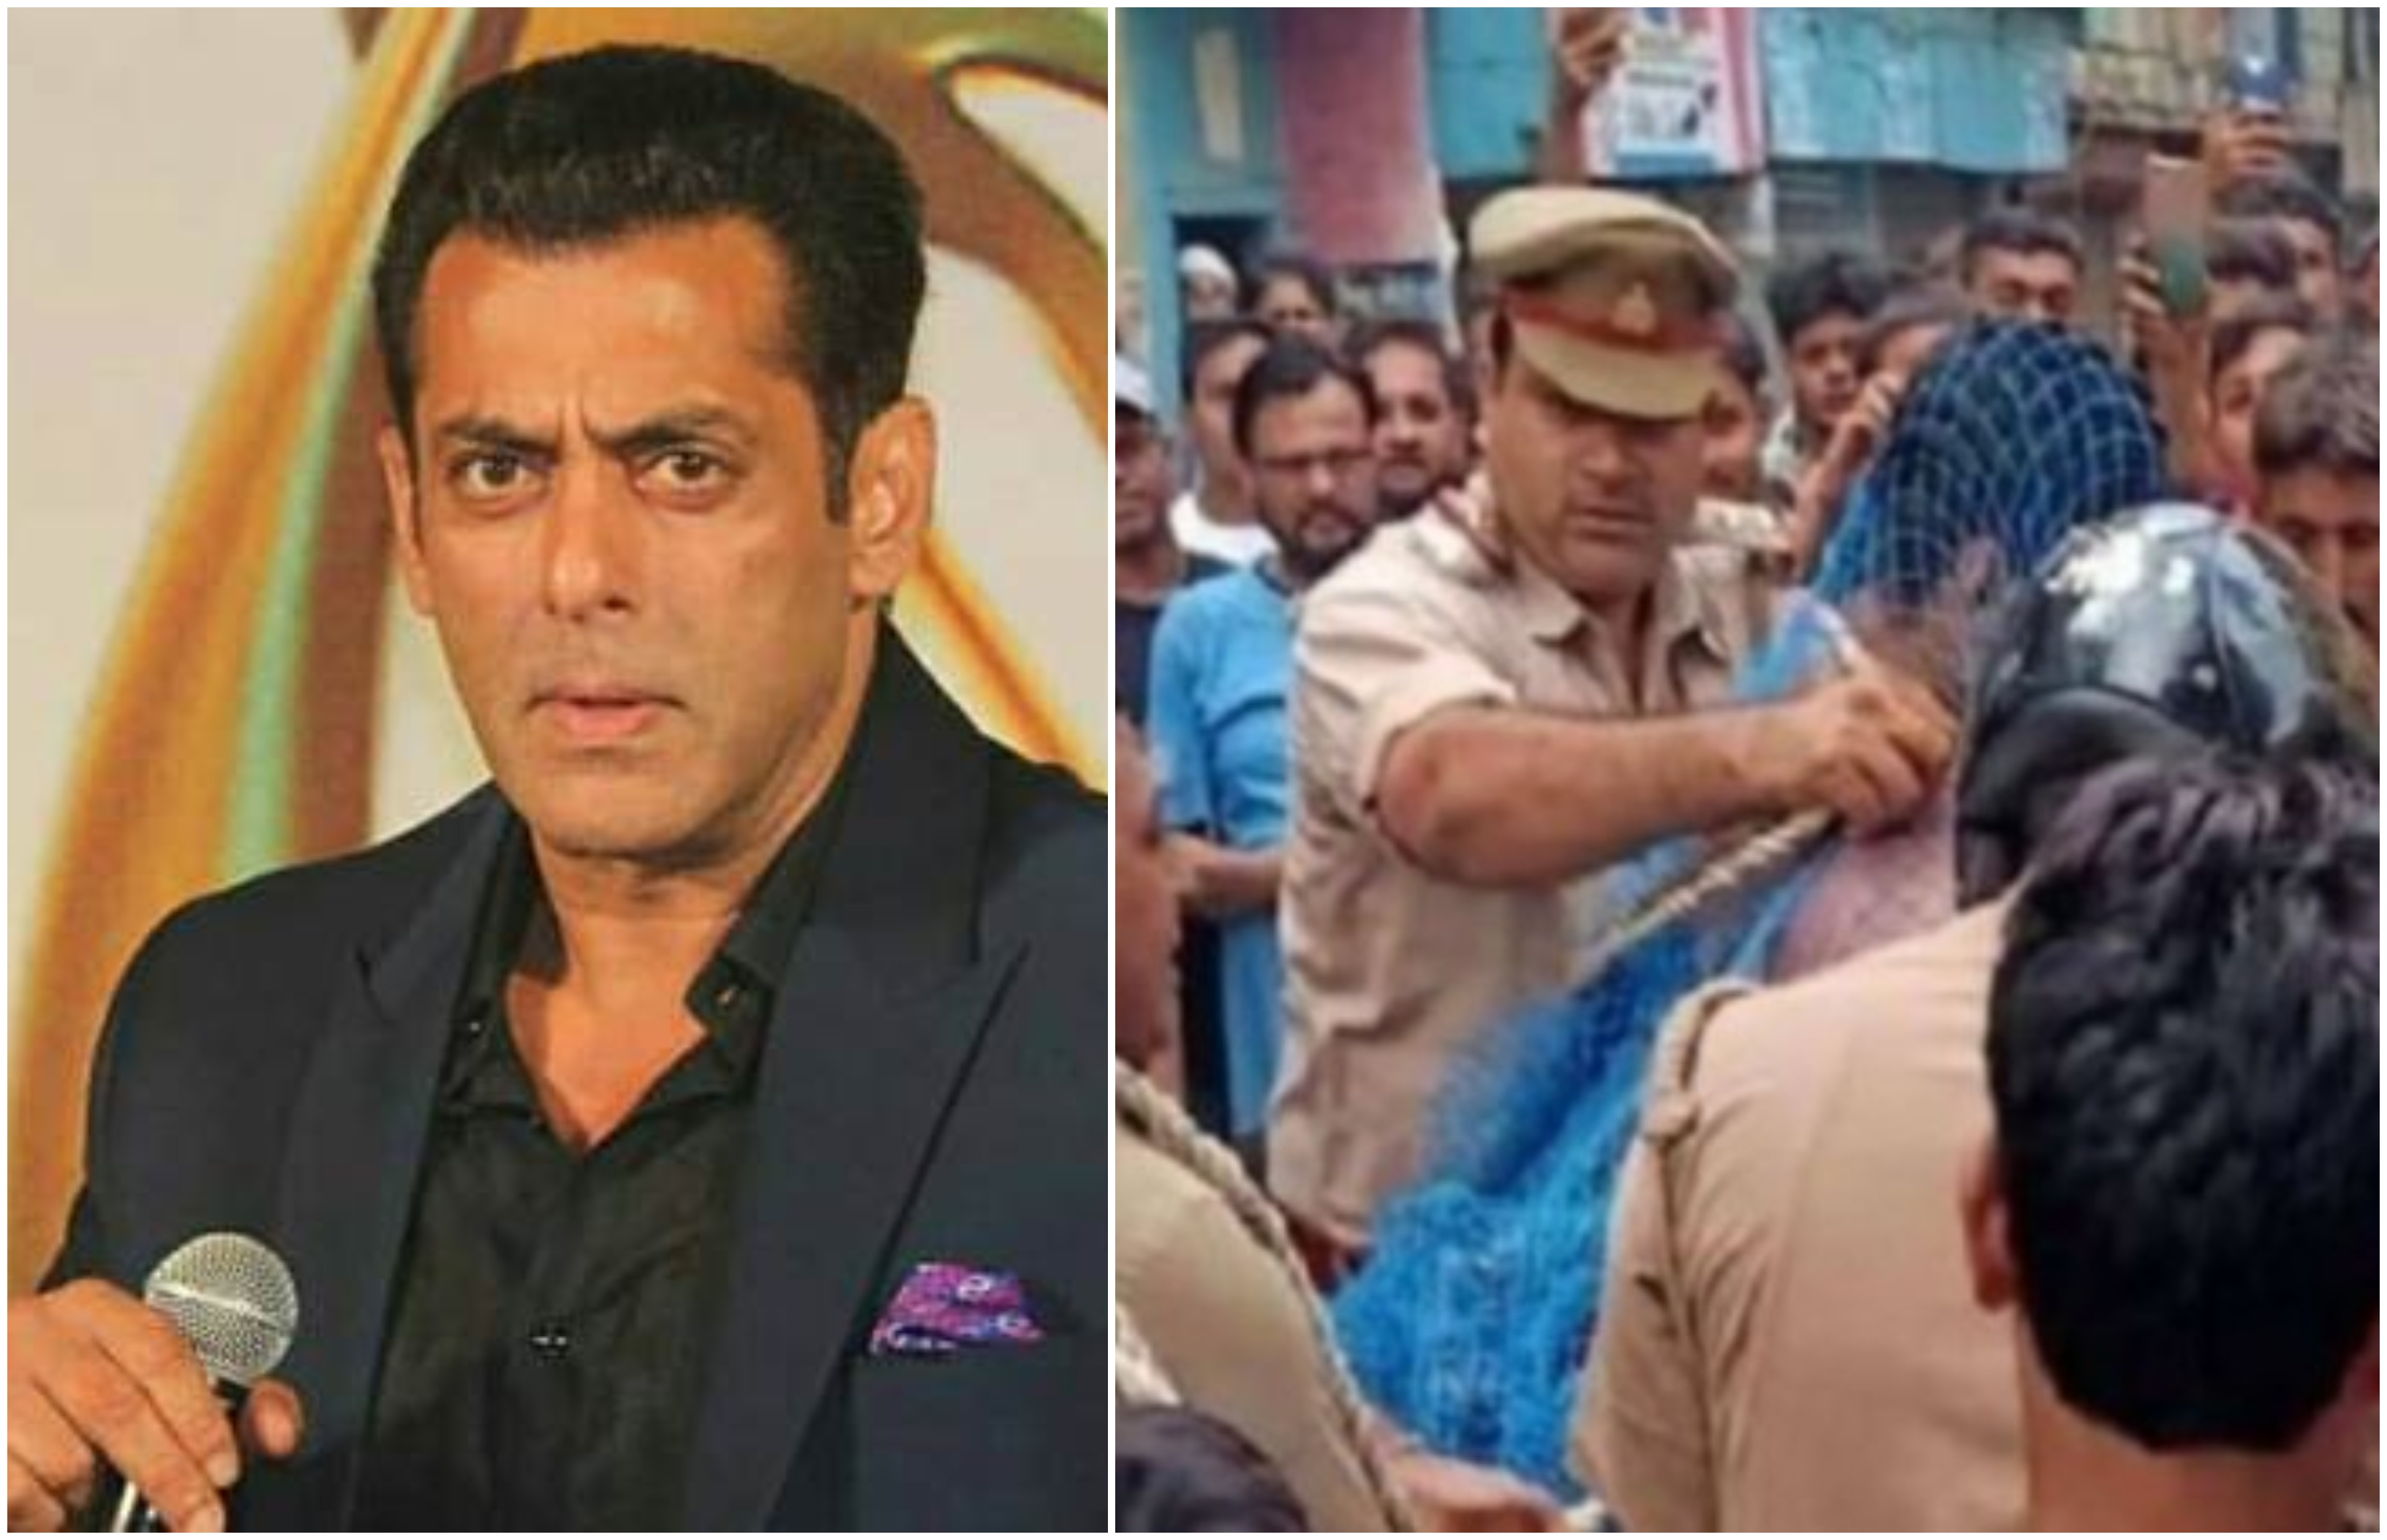 salman khan s former bodyguard goes on a public rampage after steroid overdose